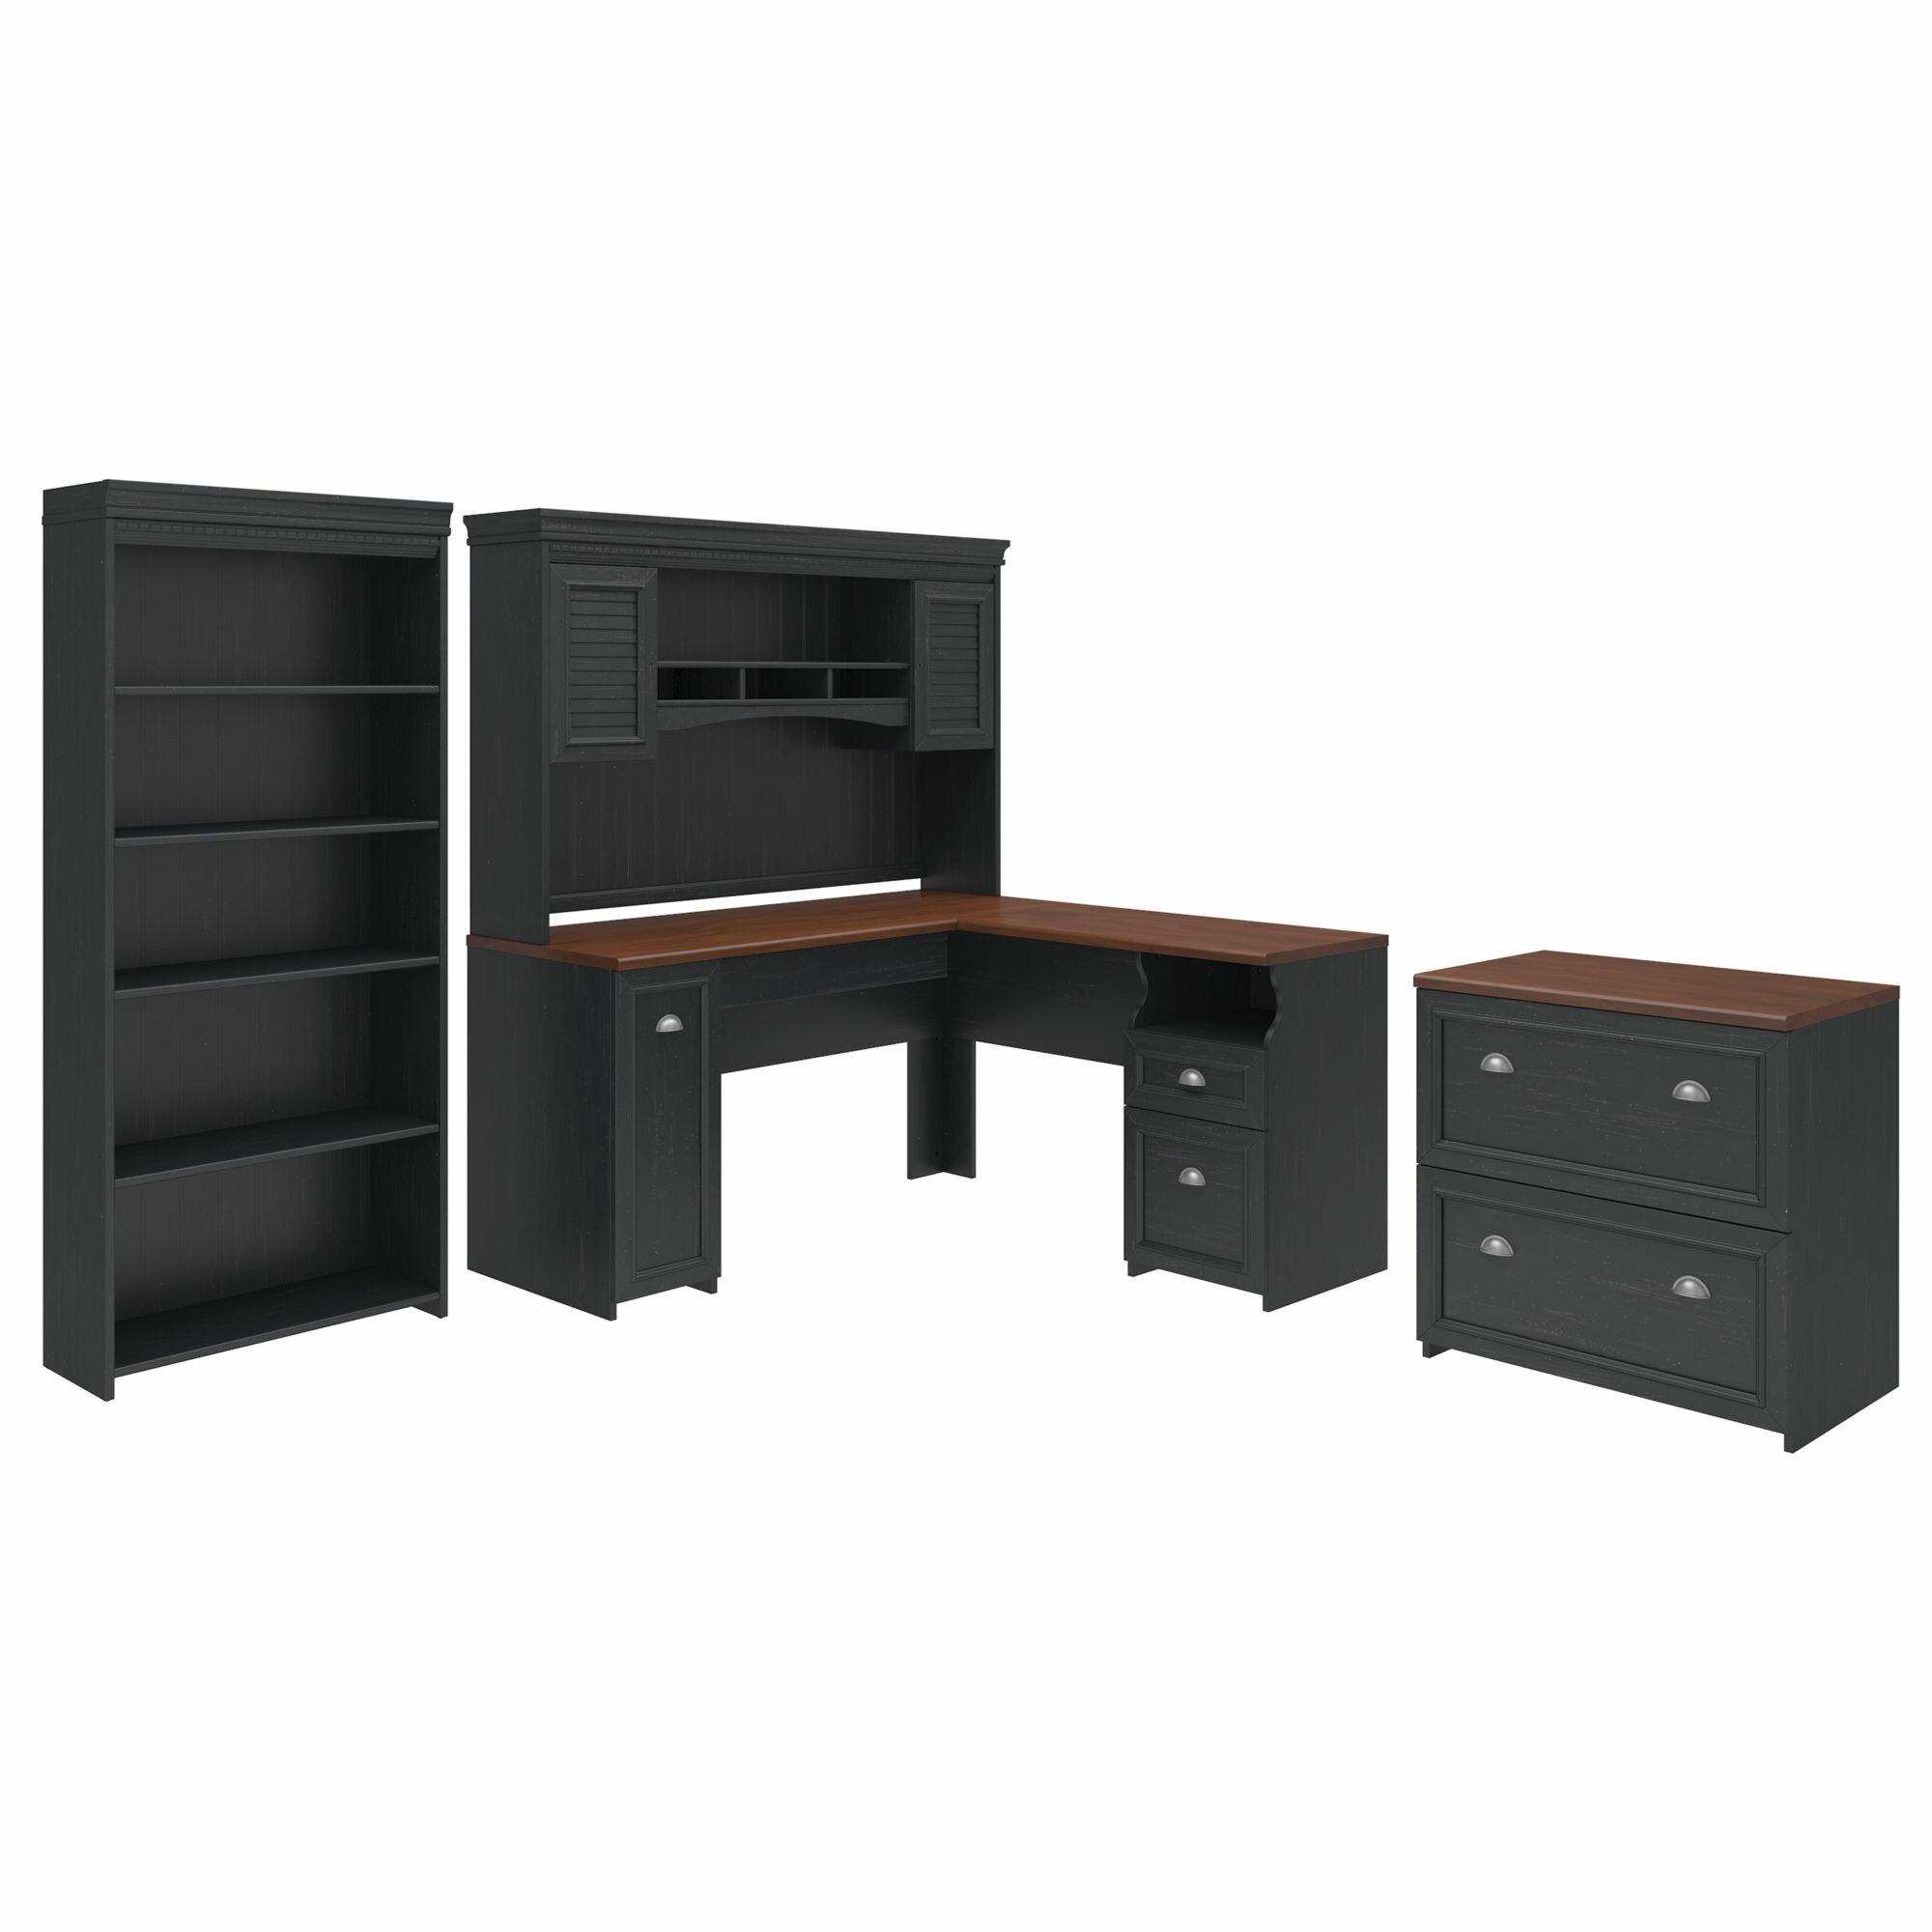 Darby Home Co Allentown Desk With Hutch Bookcase And